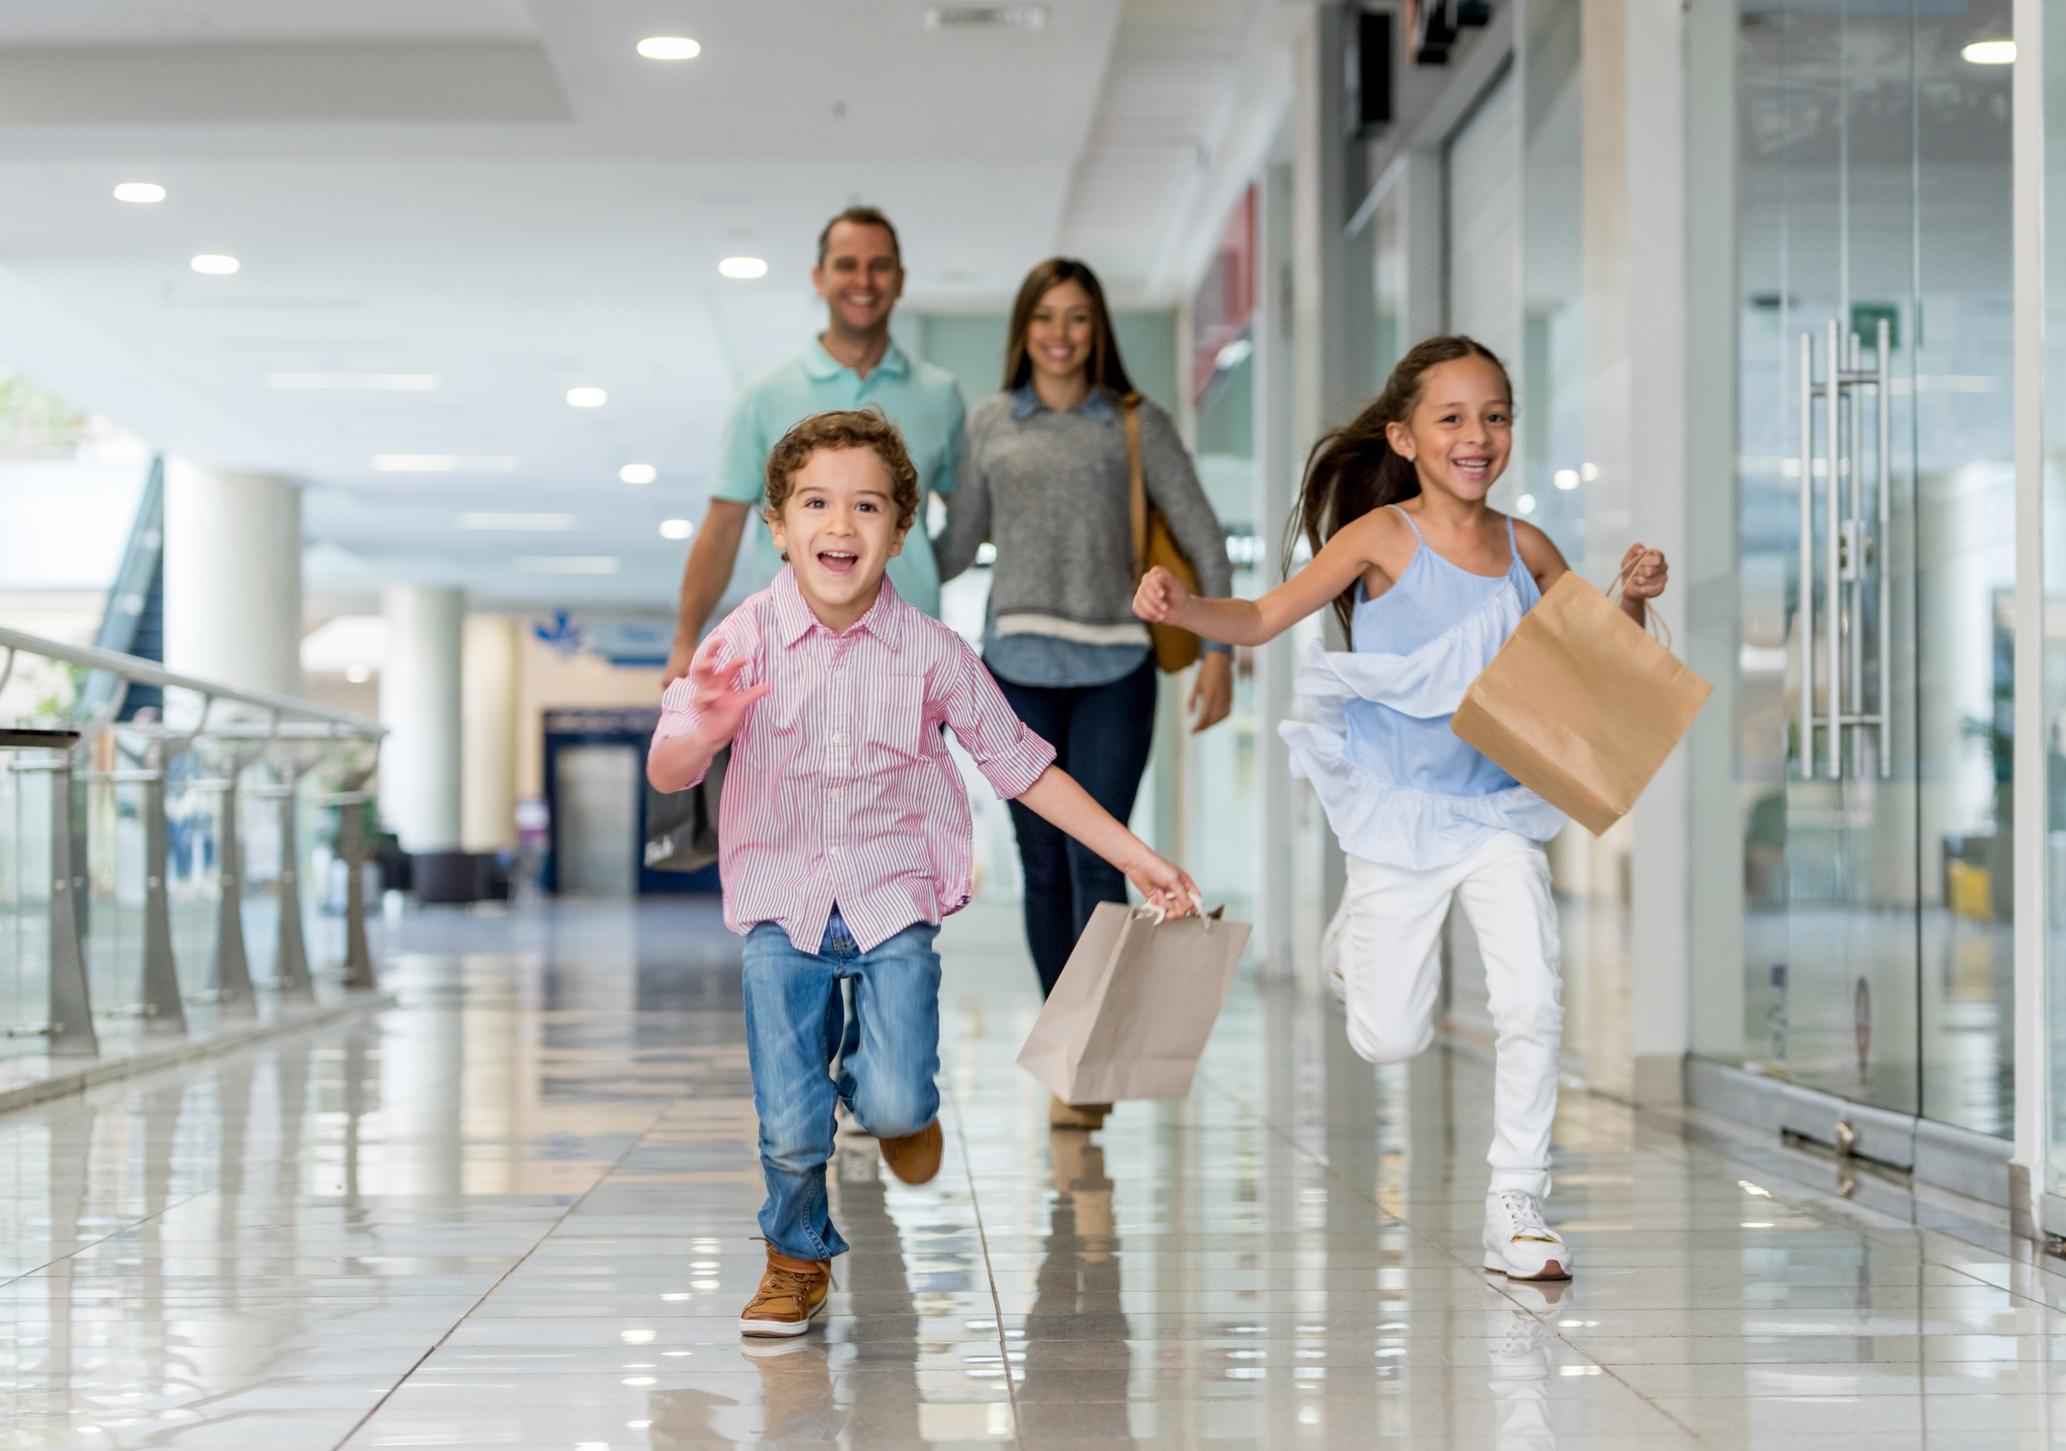 Retail Shopping with Your Family